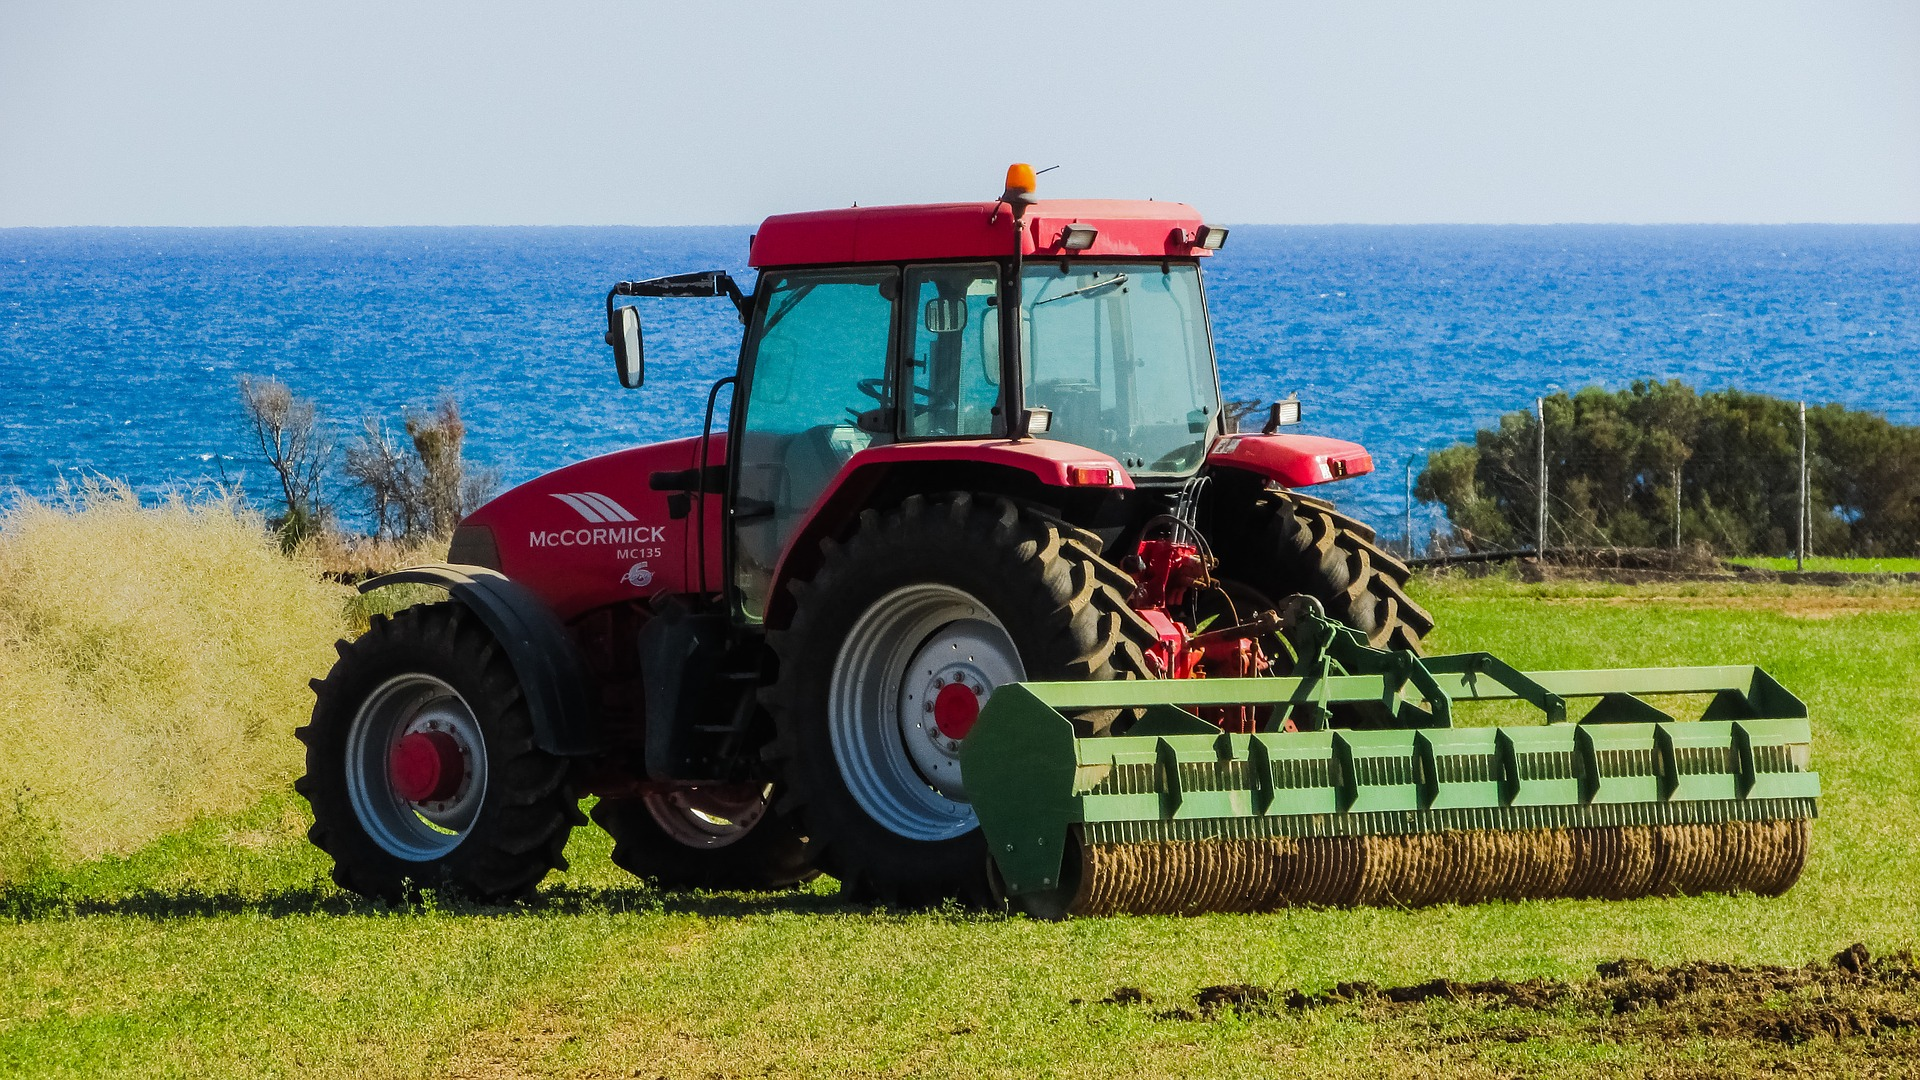 tractor-1748633_1920